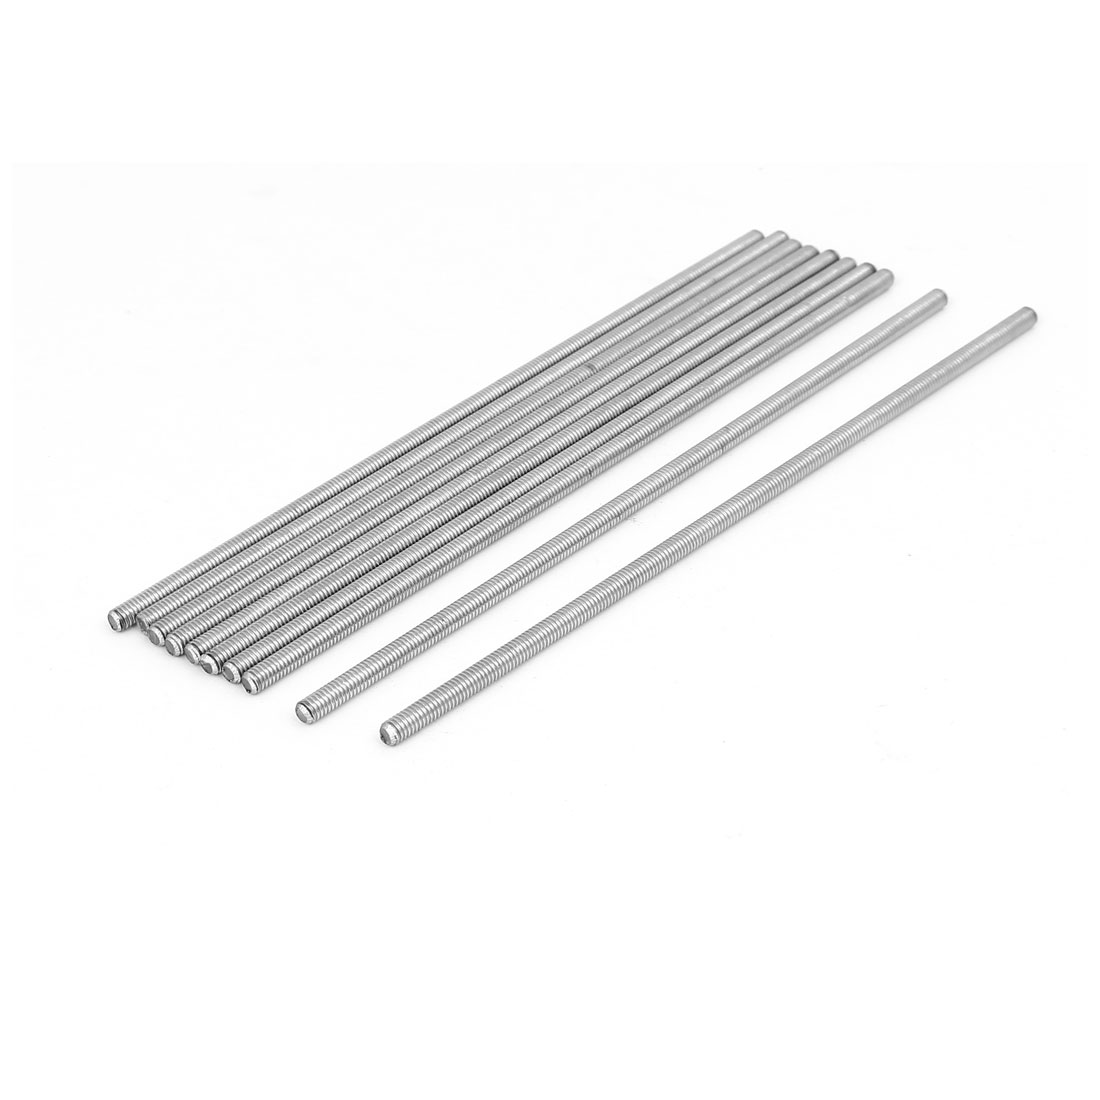 M4 x 150mm 0.7mm Pitch 304 Stainless Steel Fully Threaded Rod Silver Tone 10 Pcs